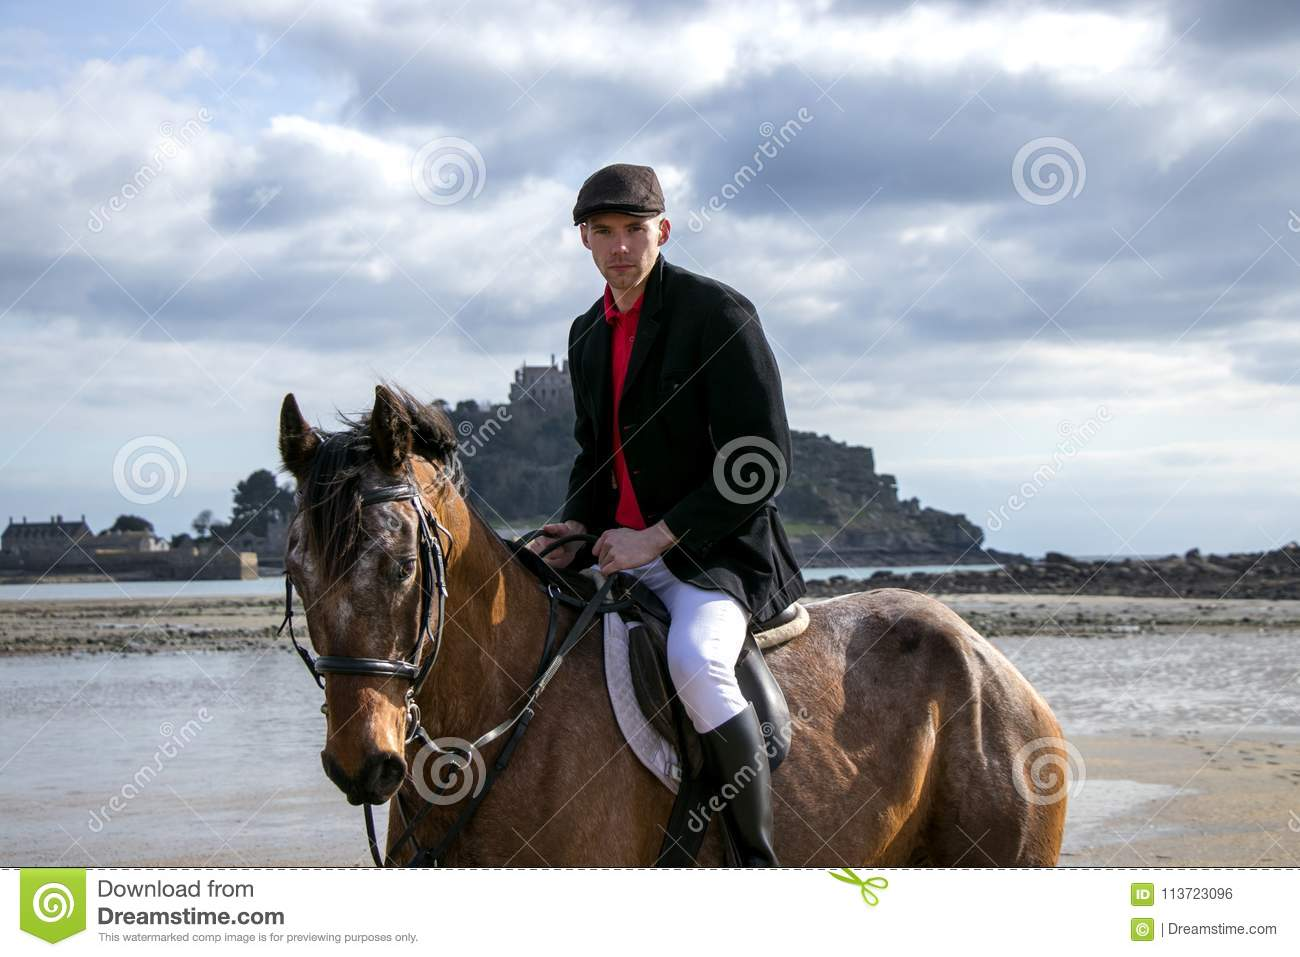 Good Looking Male Horse Rider Riding Horse On Beach In Traditional Riding Clothing With St Michael S Mount In Background Stock Photo Image Of Beautiful Equine 113723096